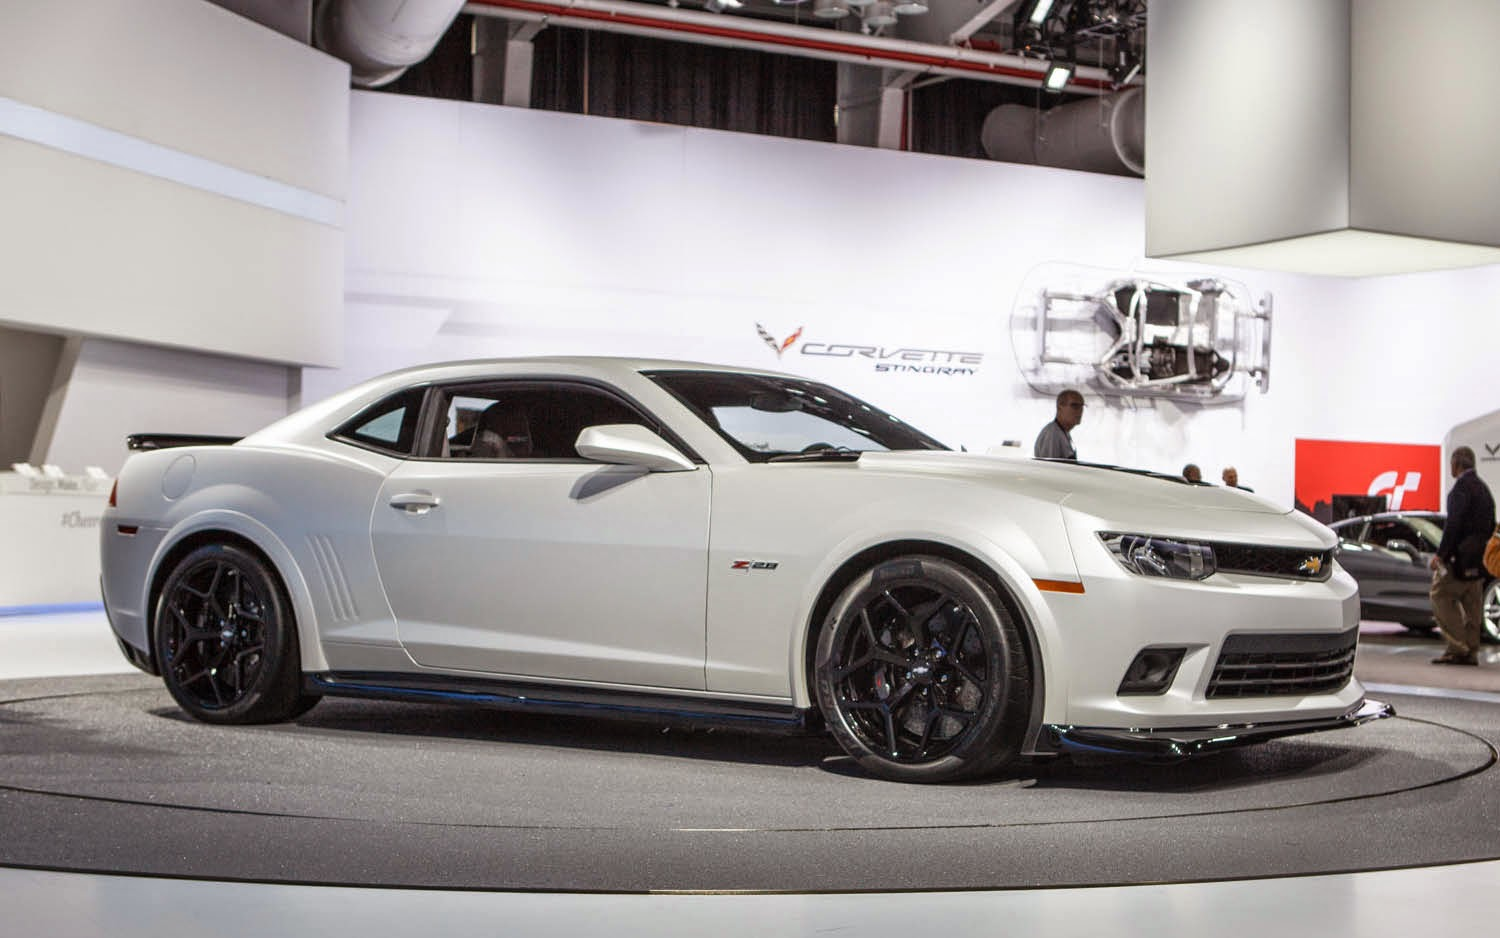 2014 Chevrolet Camaro Z28 New Interior And Exterior New Hd Wallpaper